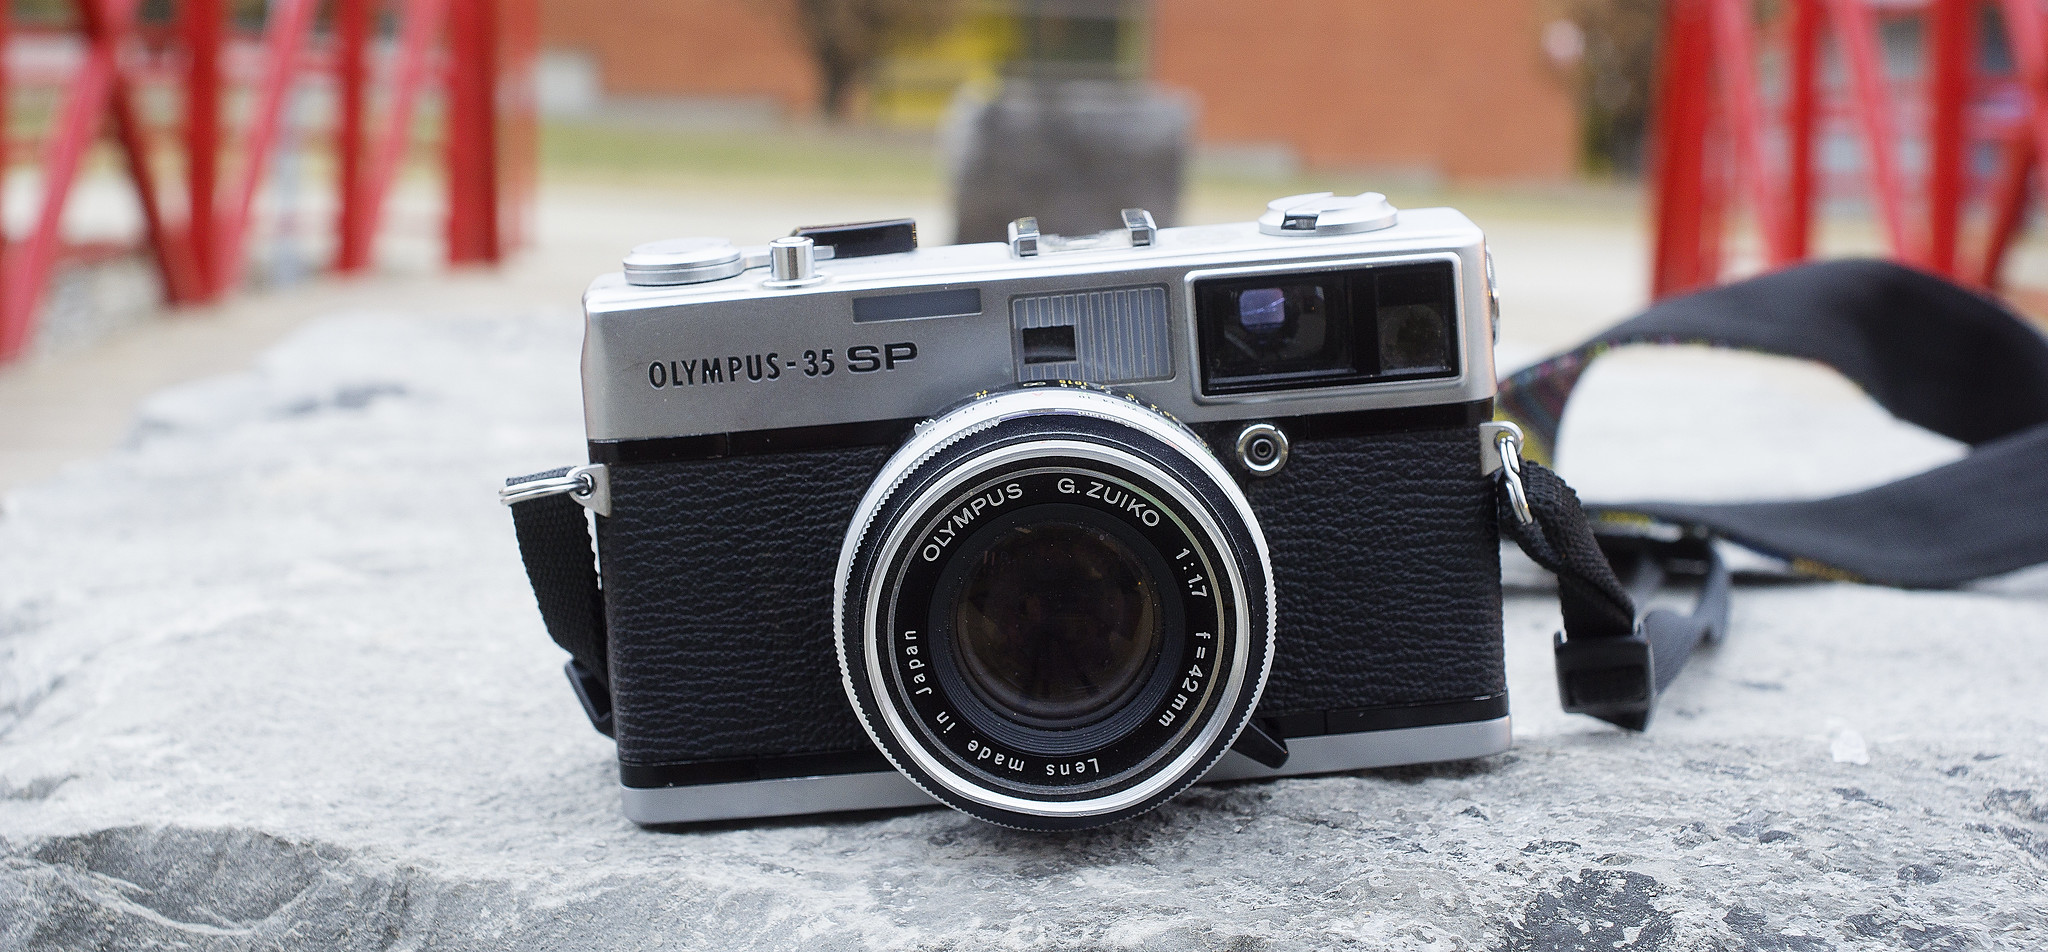 Olympus 35SP (Pic: Alex Luyckx/Flickr)